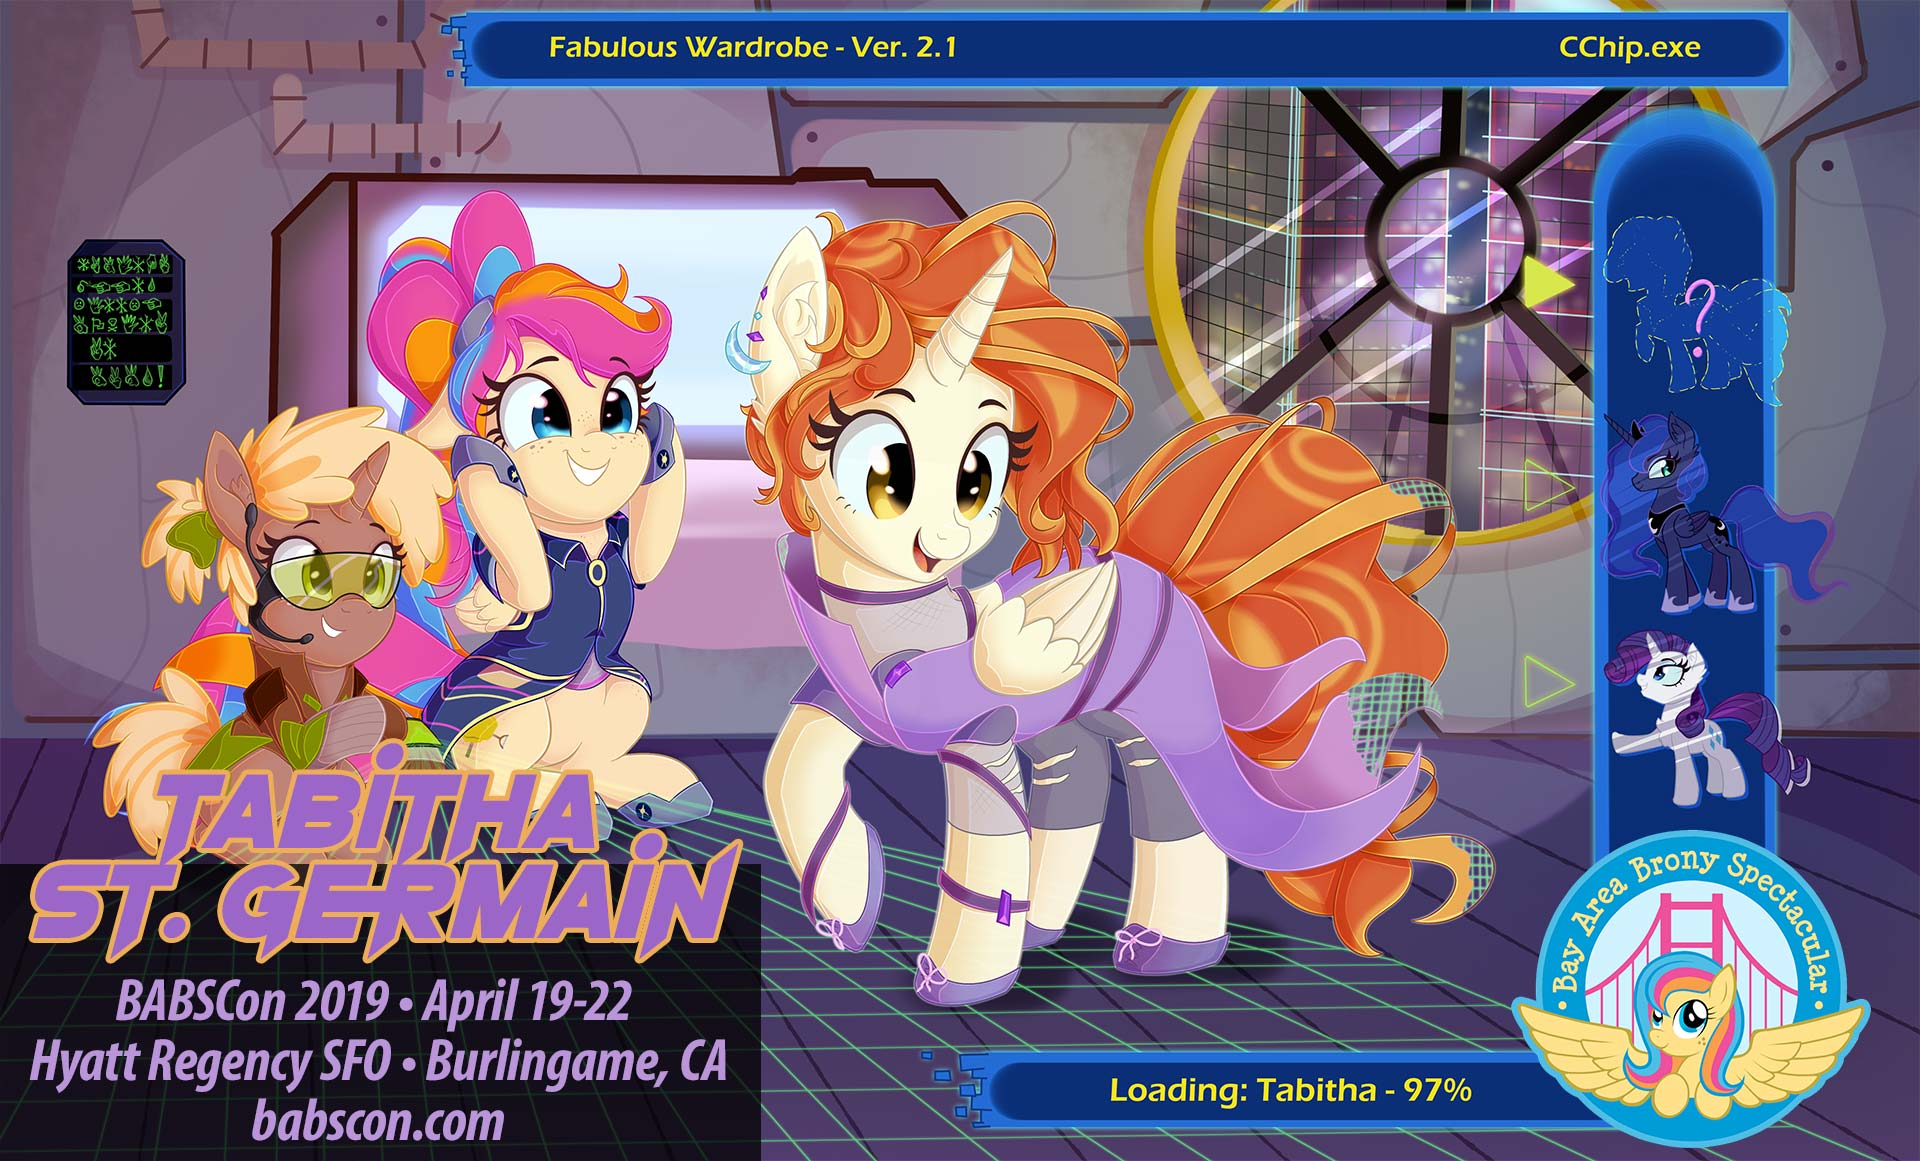 Tabitha St. Germain Will Make All The Friends at BABSCon 2019!